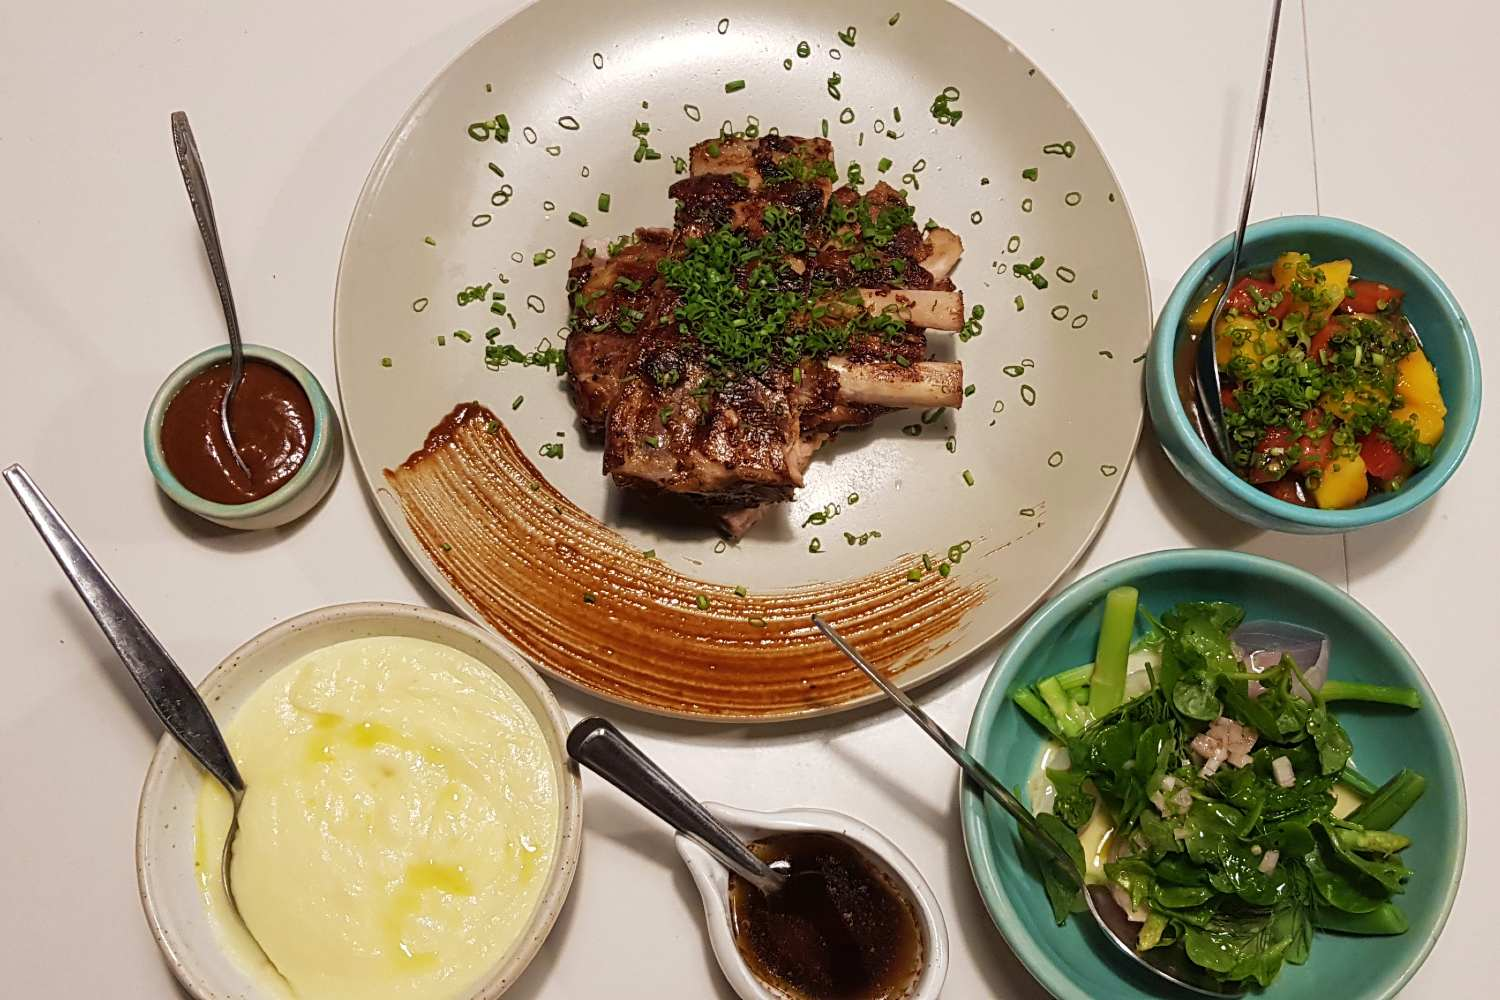 Spareribs with various side dishes and homemade sauces at Yang Garden, one of the best restaurants on koh lanta!